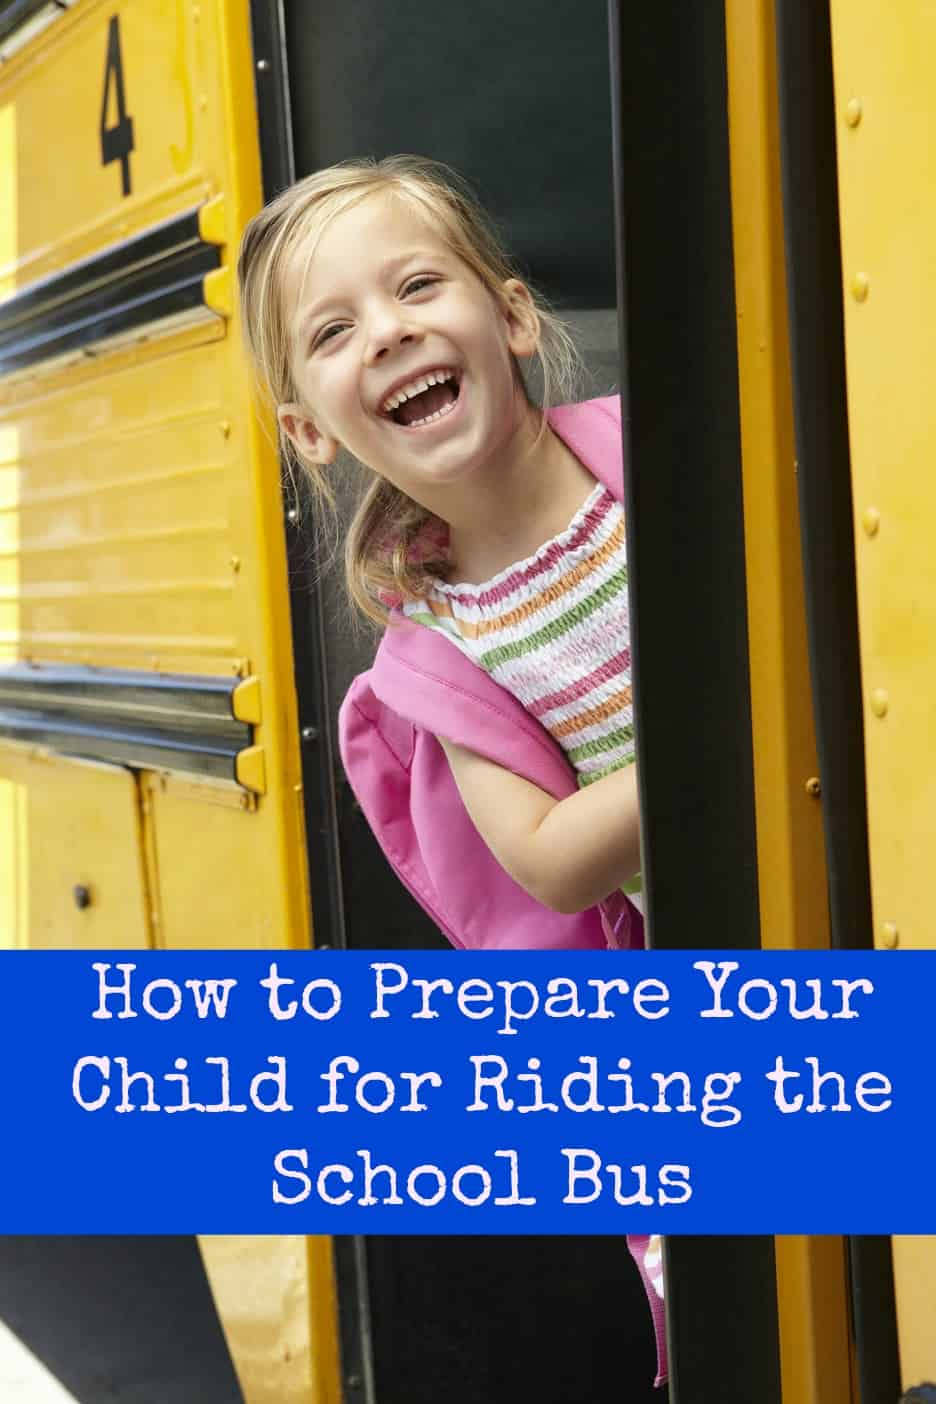 Is your child getting ready to ride the school bus for the first time? Here are some tips!